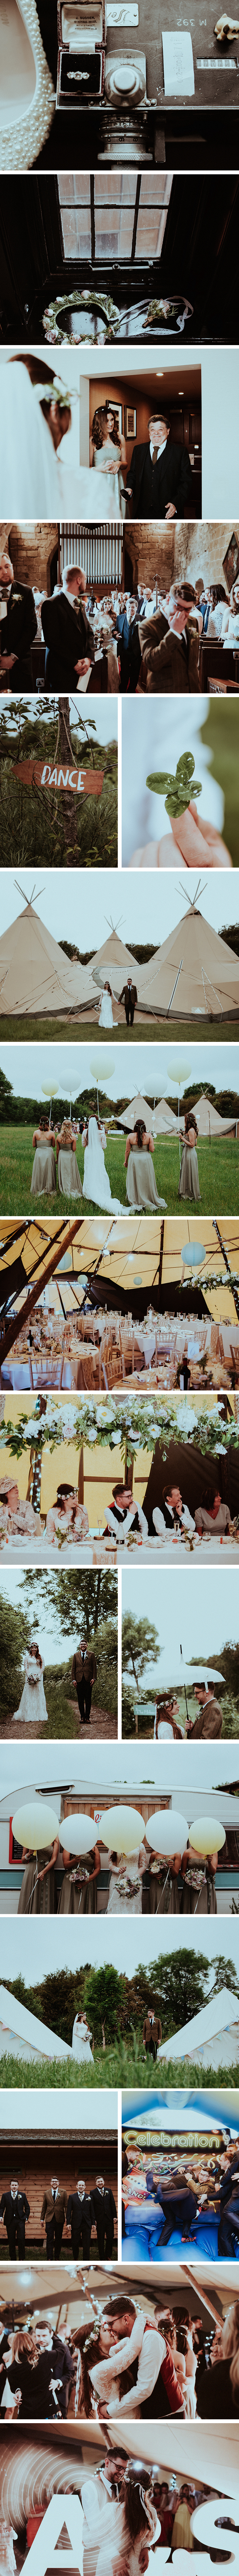 Alice & Scott PapaKata Teepee Wedding at The Hideaway @Baxby Manor, North Yorkshire